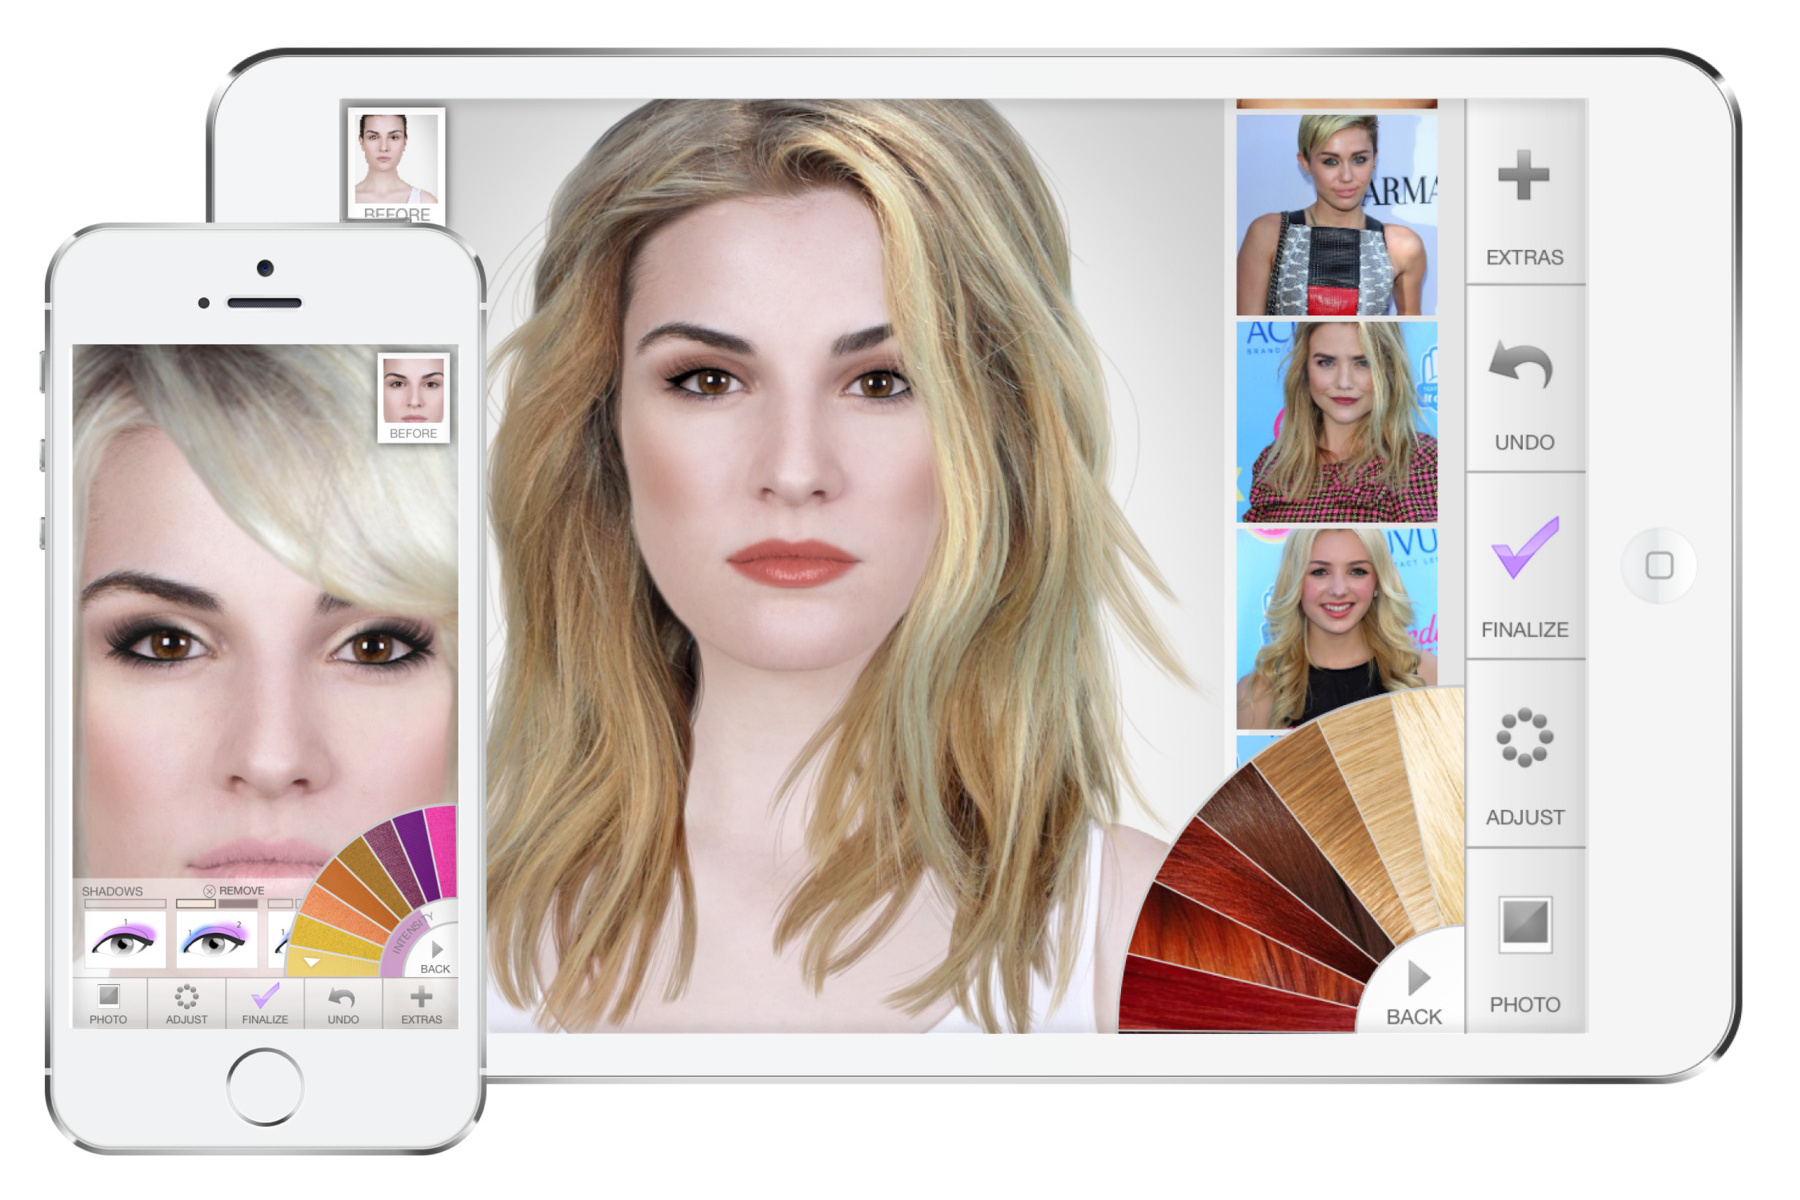 The Story Of Virtual Hairstyles App Has Just Gone Viral Virtual